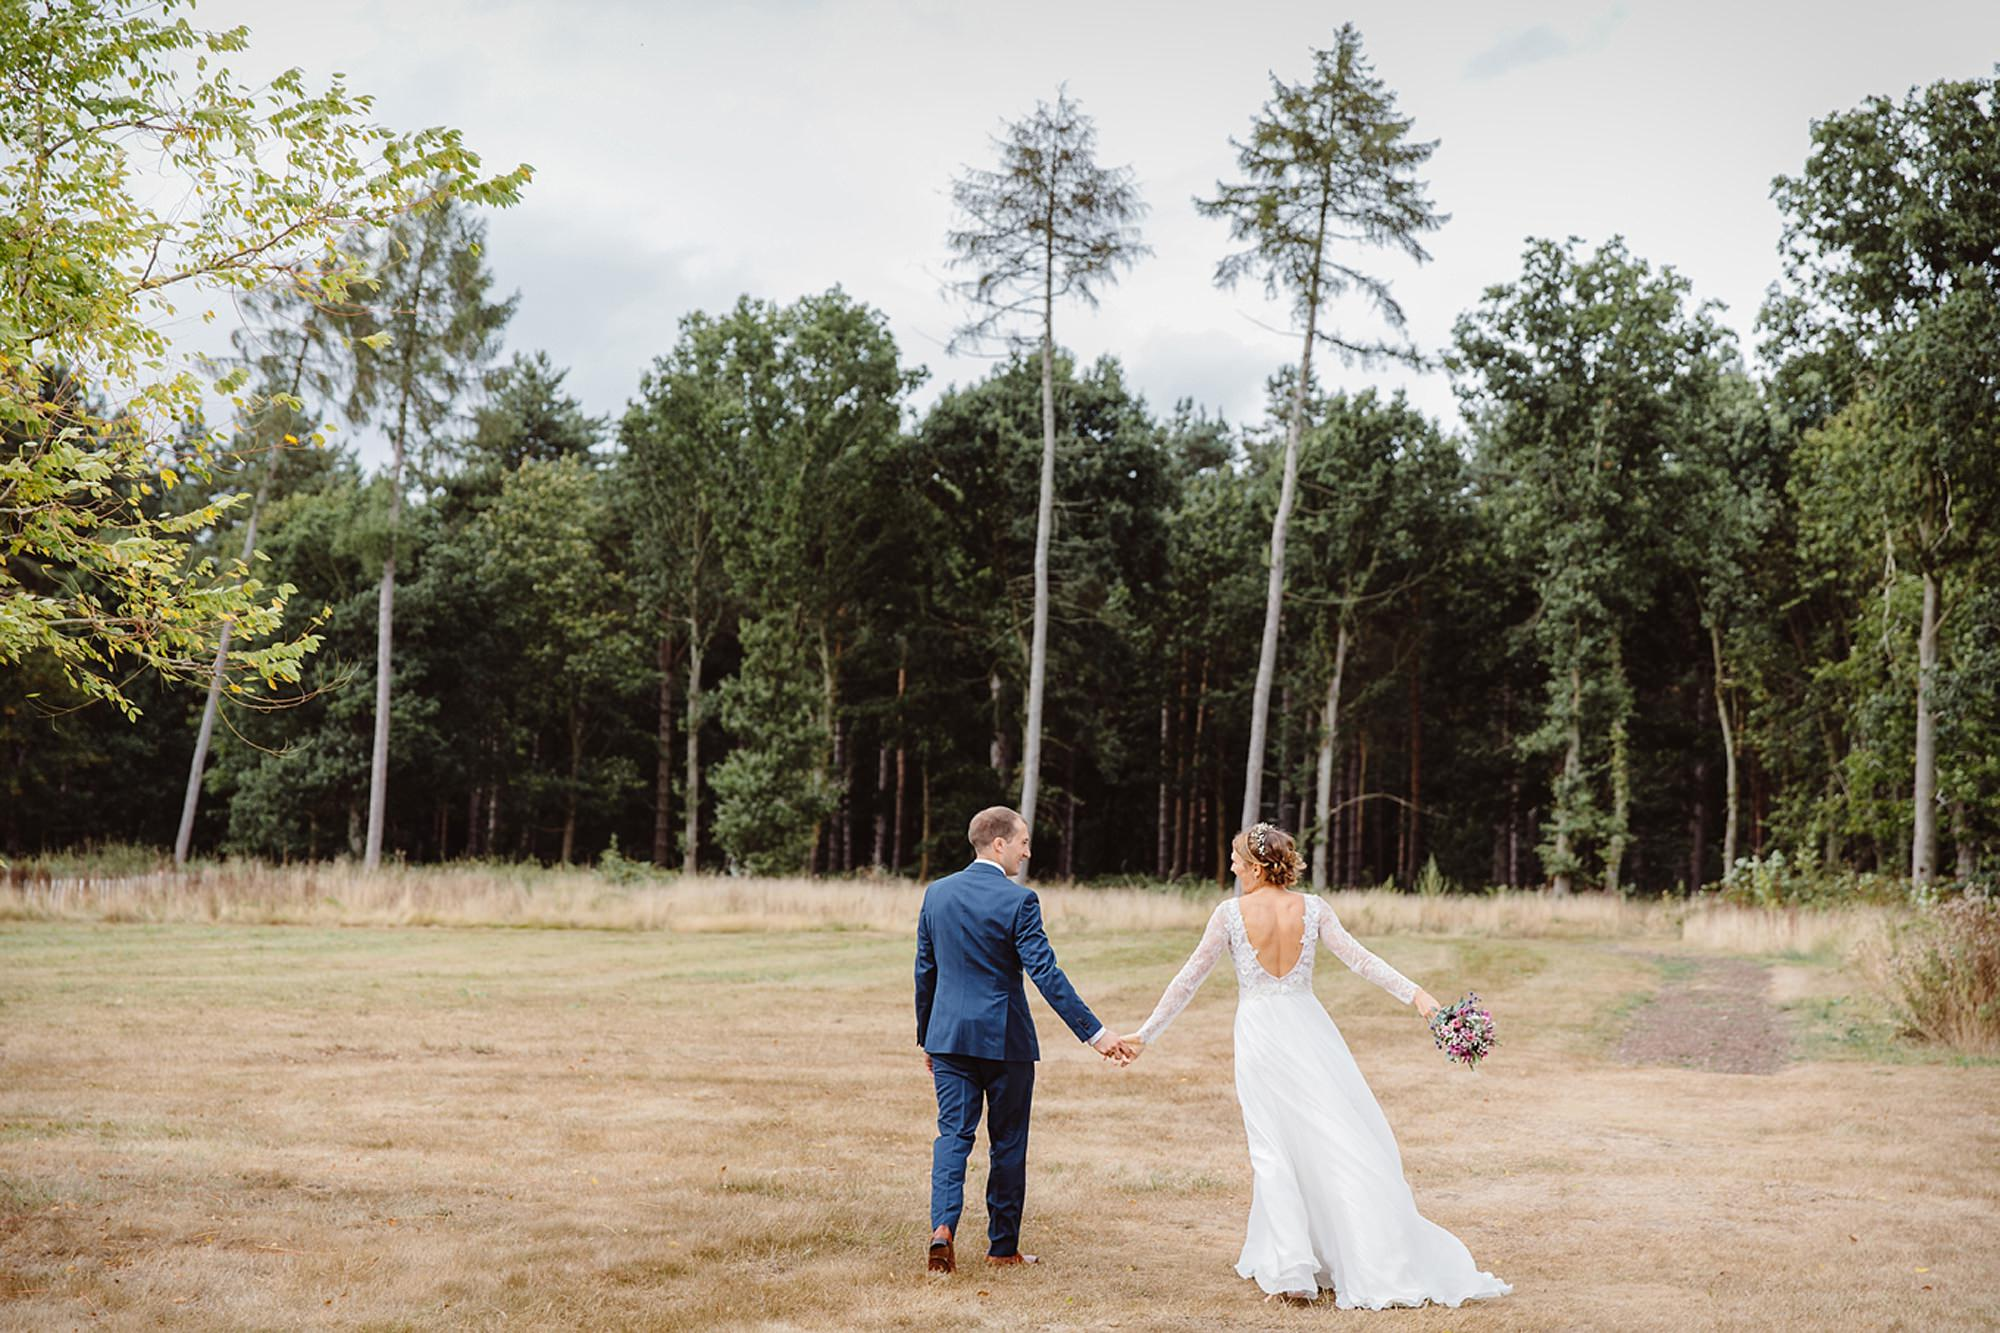 Marks Hall Estate wedding photography bride and groom in field at marks hal estate